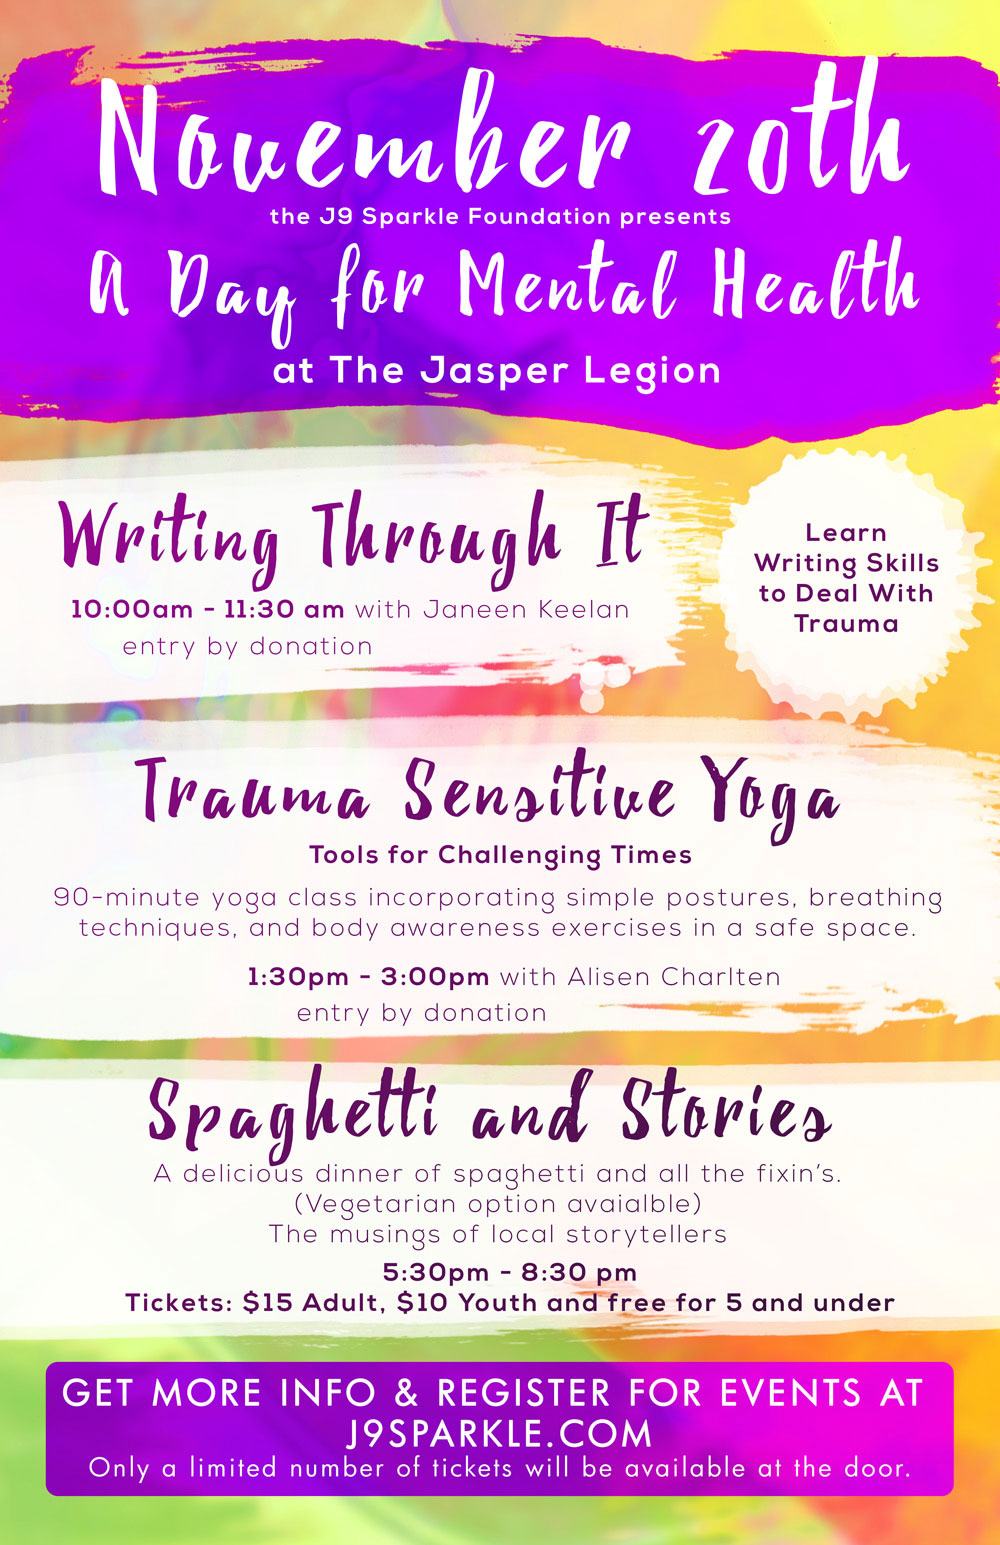 Events-for-Mental-Health-2-proof-2.jpg